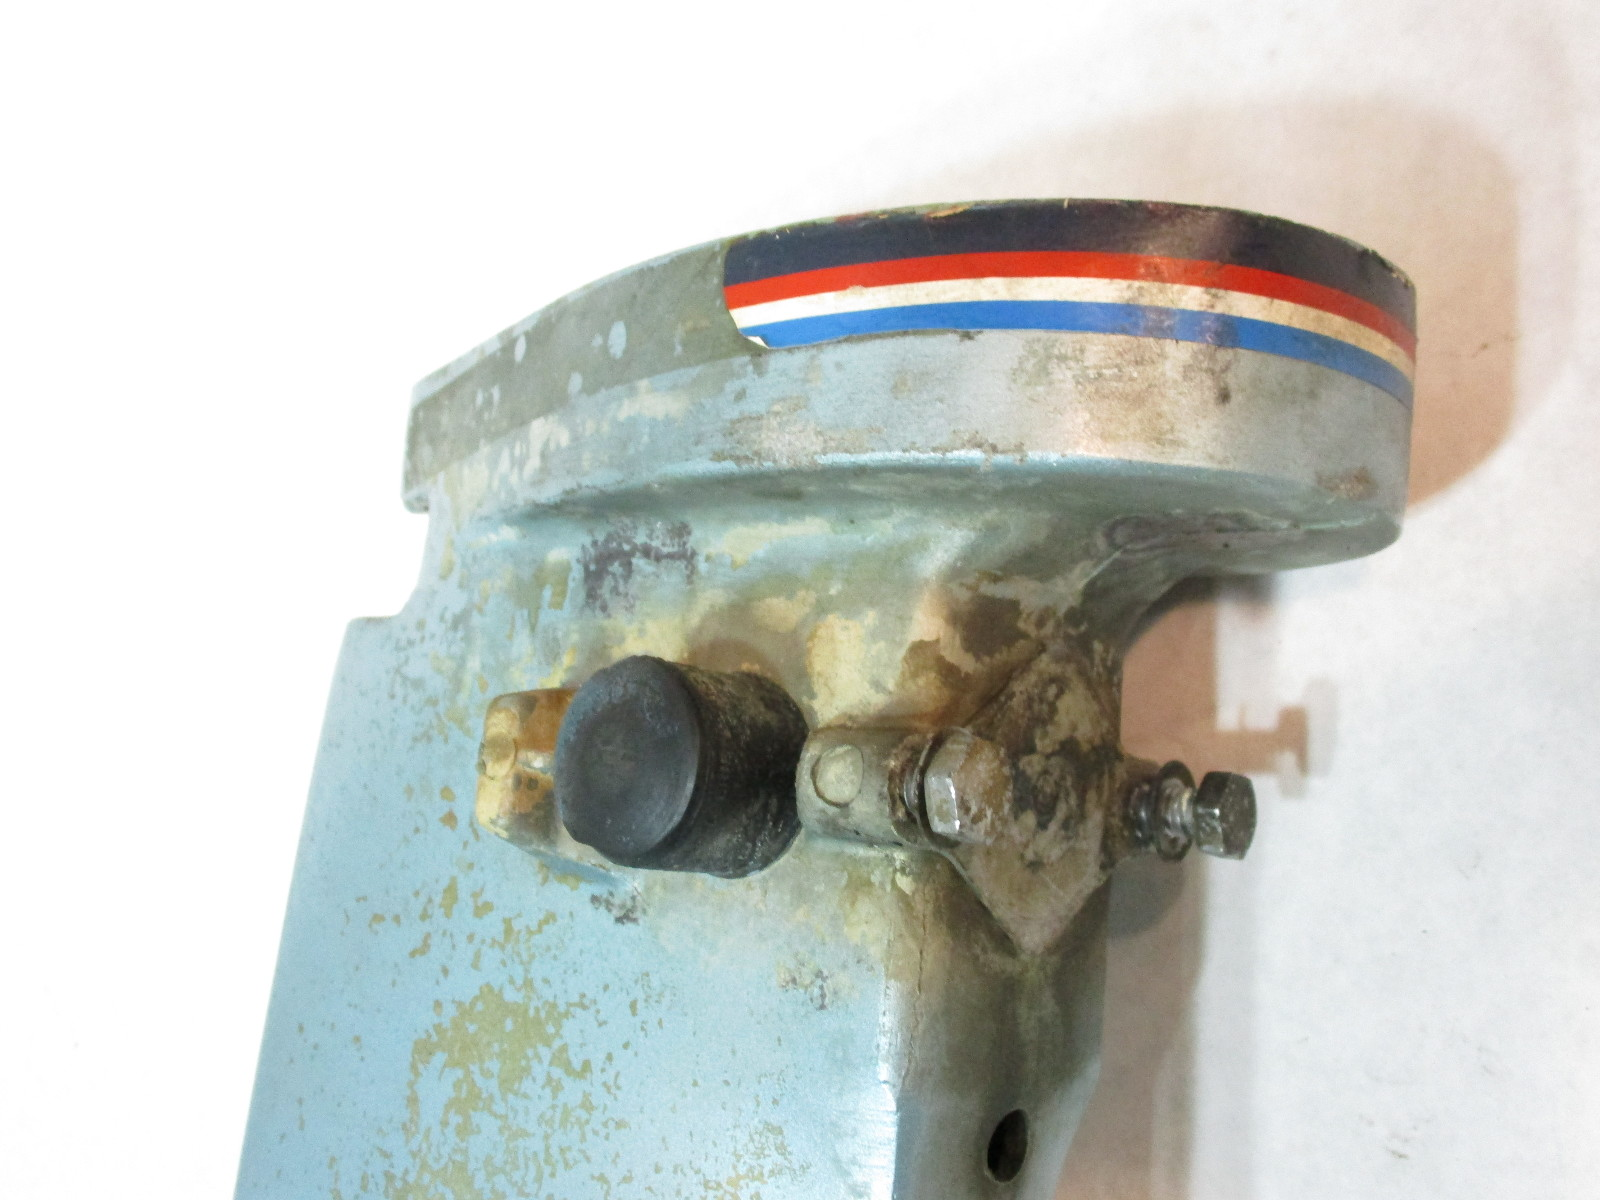 0391140 Evinrude Johnson 25 Hp Outboard Exhaust Housing 1981